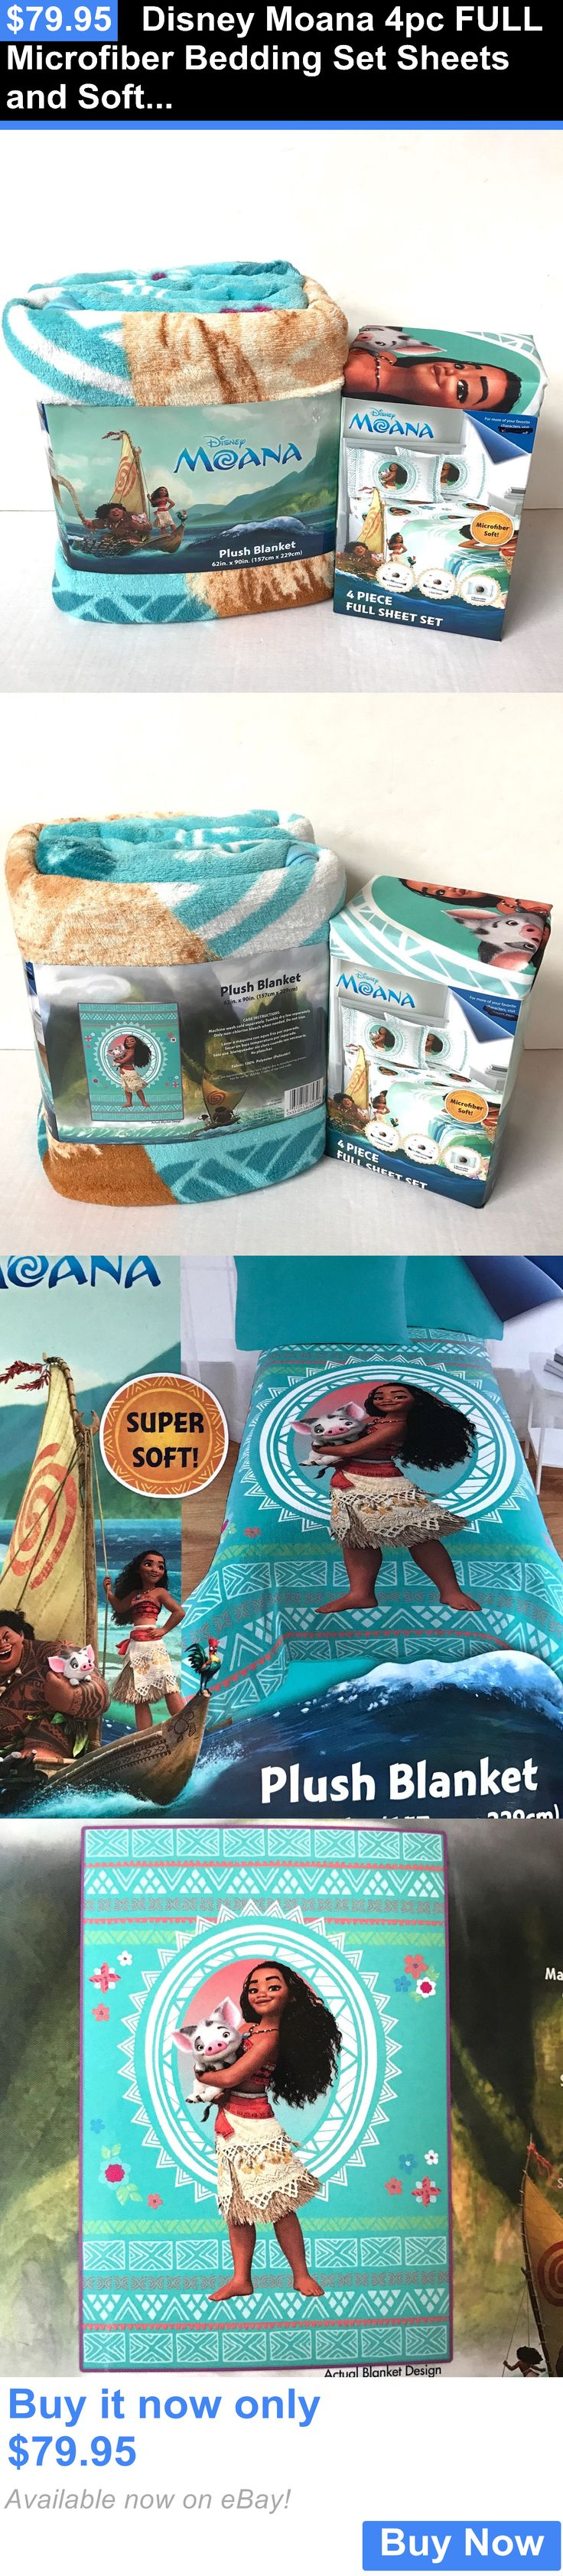 Kids Bedding: Disney Moana 4Pc Full Microfiber Bedding Set Sheets And Soft Plush Blanket BUY IT NOW ONLY: $79.95